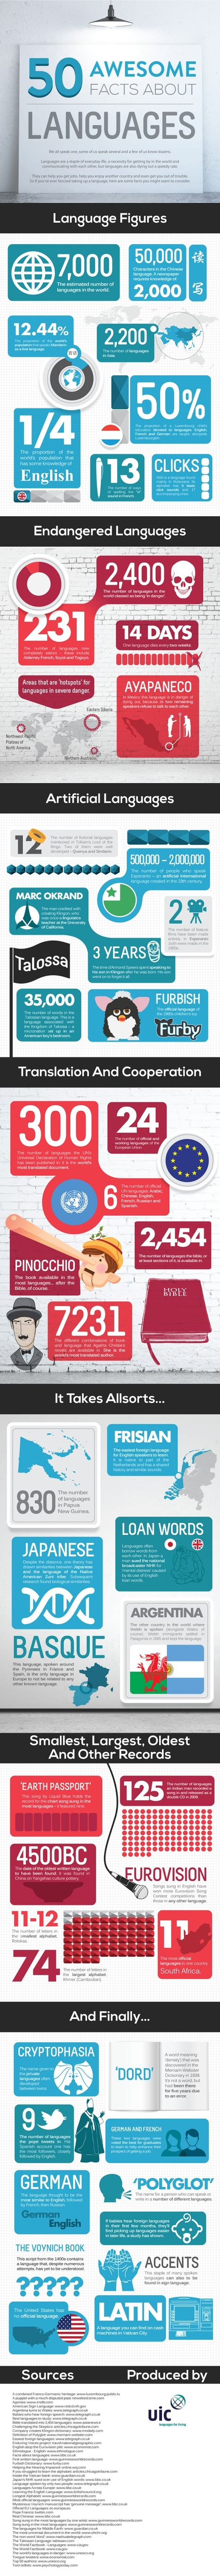 50 awesome facts about LANGUAGES | INFOGRAPHIC | Lesson Plans | Scoop.it